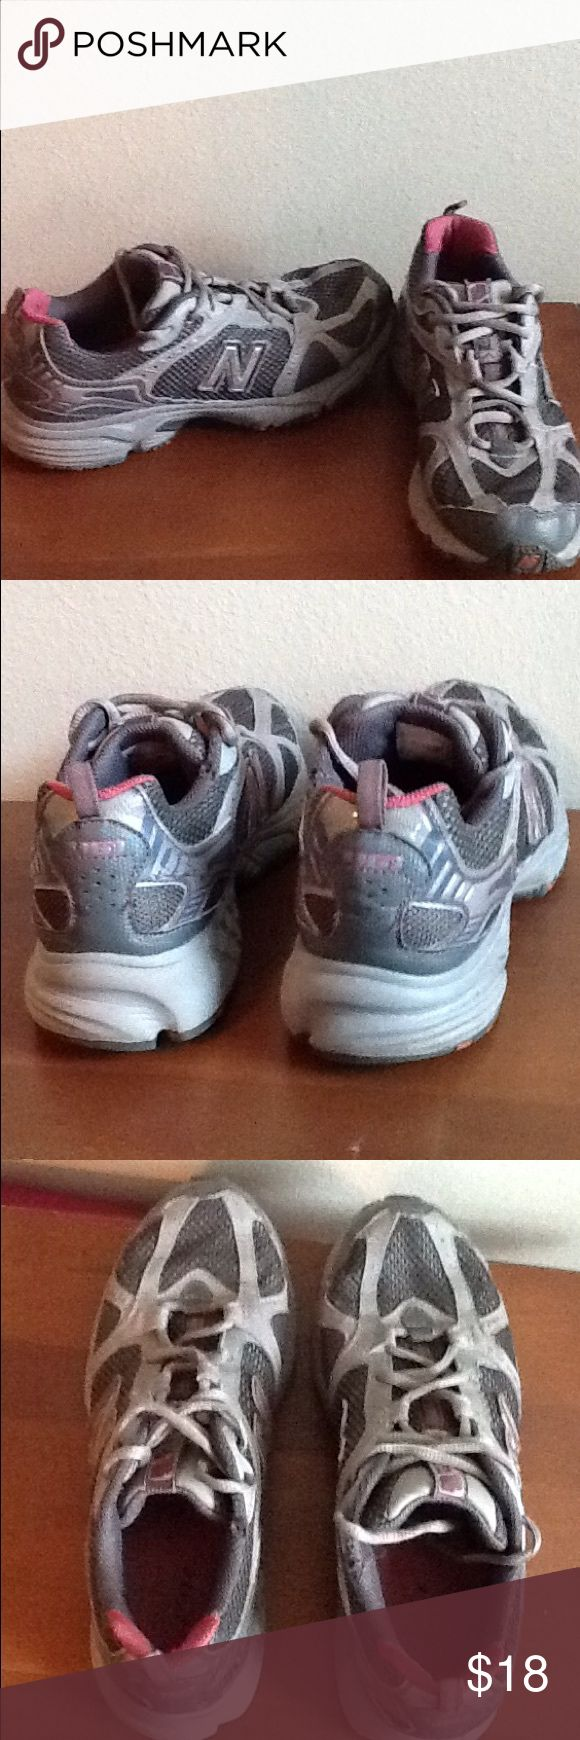 Women's New Balance 461 All Terrain Hiking Trails Used pair of running/hiking sneakers with little signs of wear. Extremely comfortable and lots of life left. Make an offer. New Balance Shoes Athletic Shoes